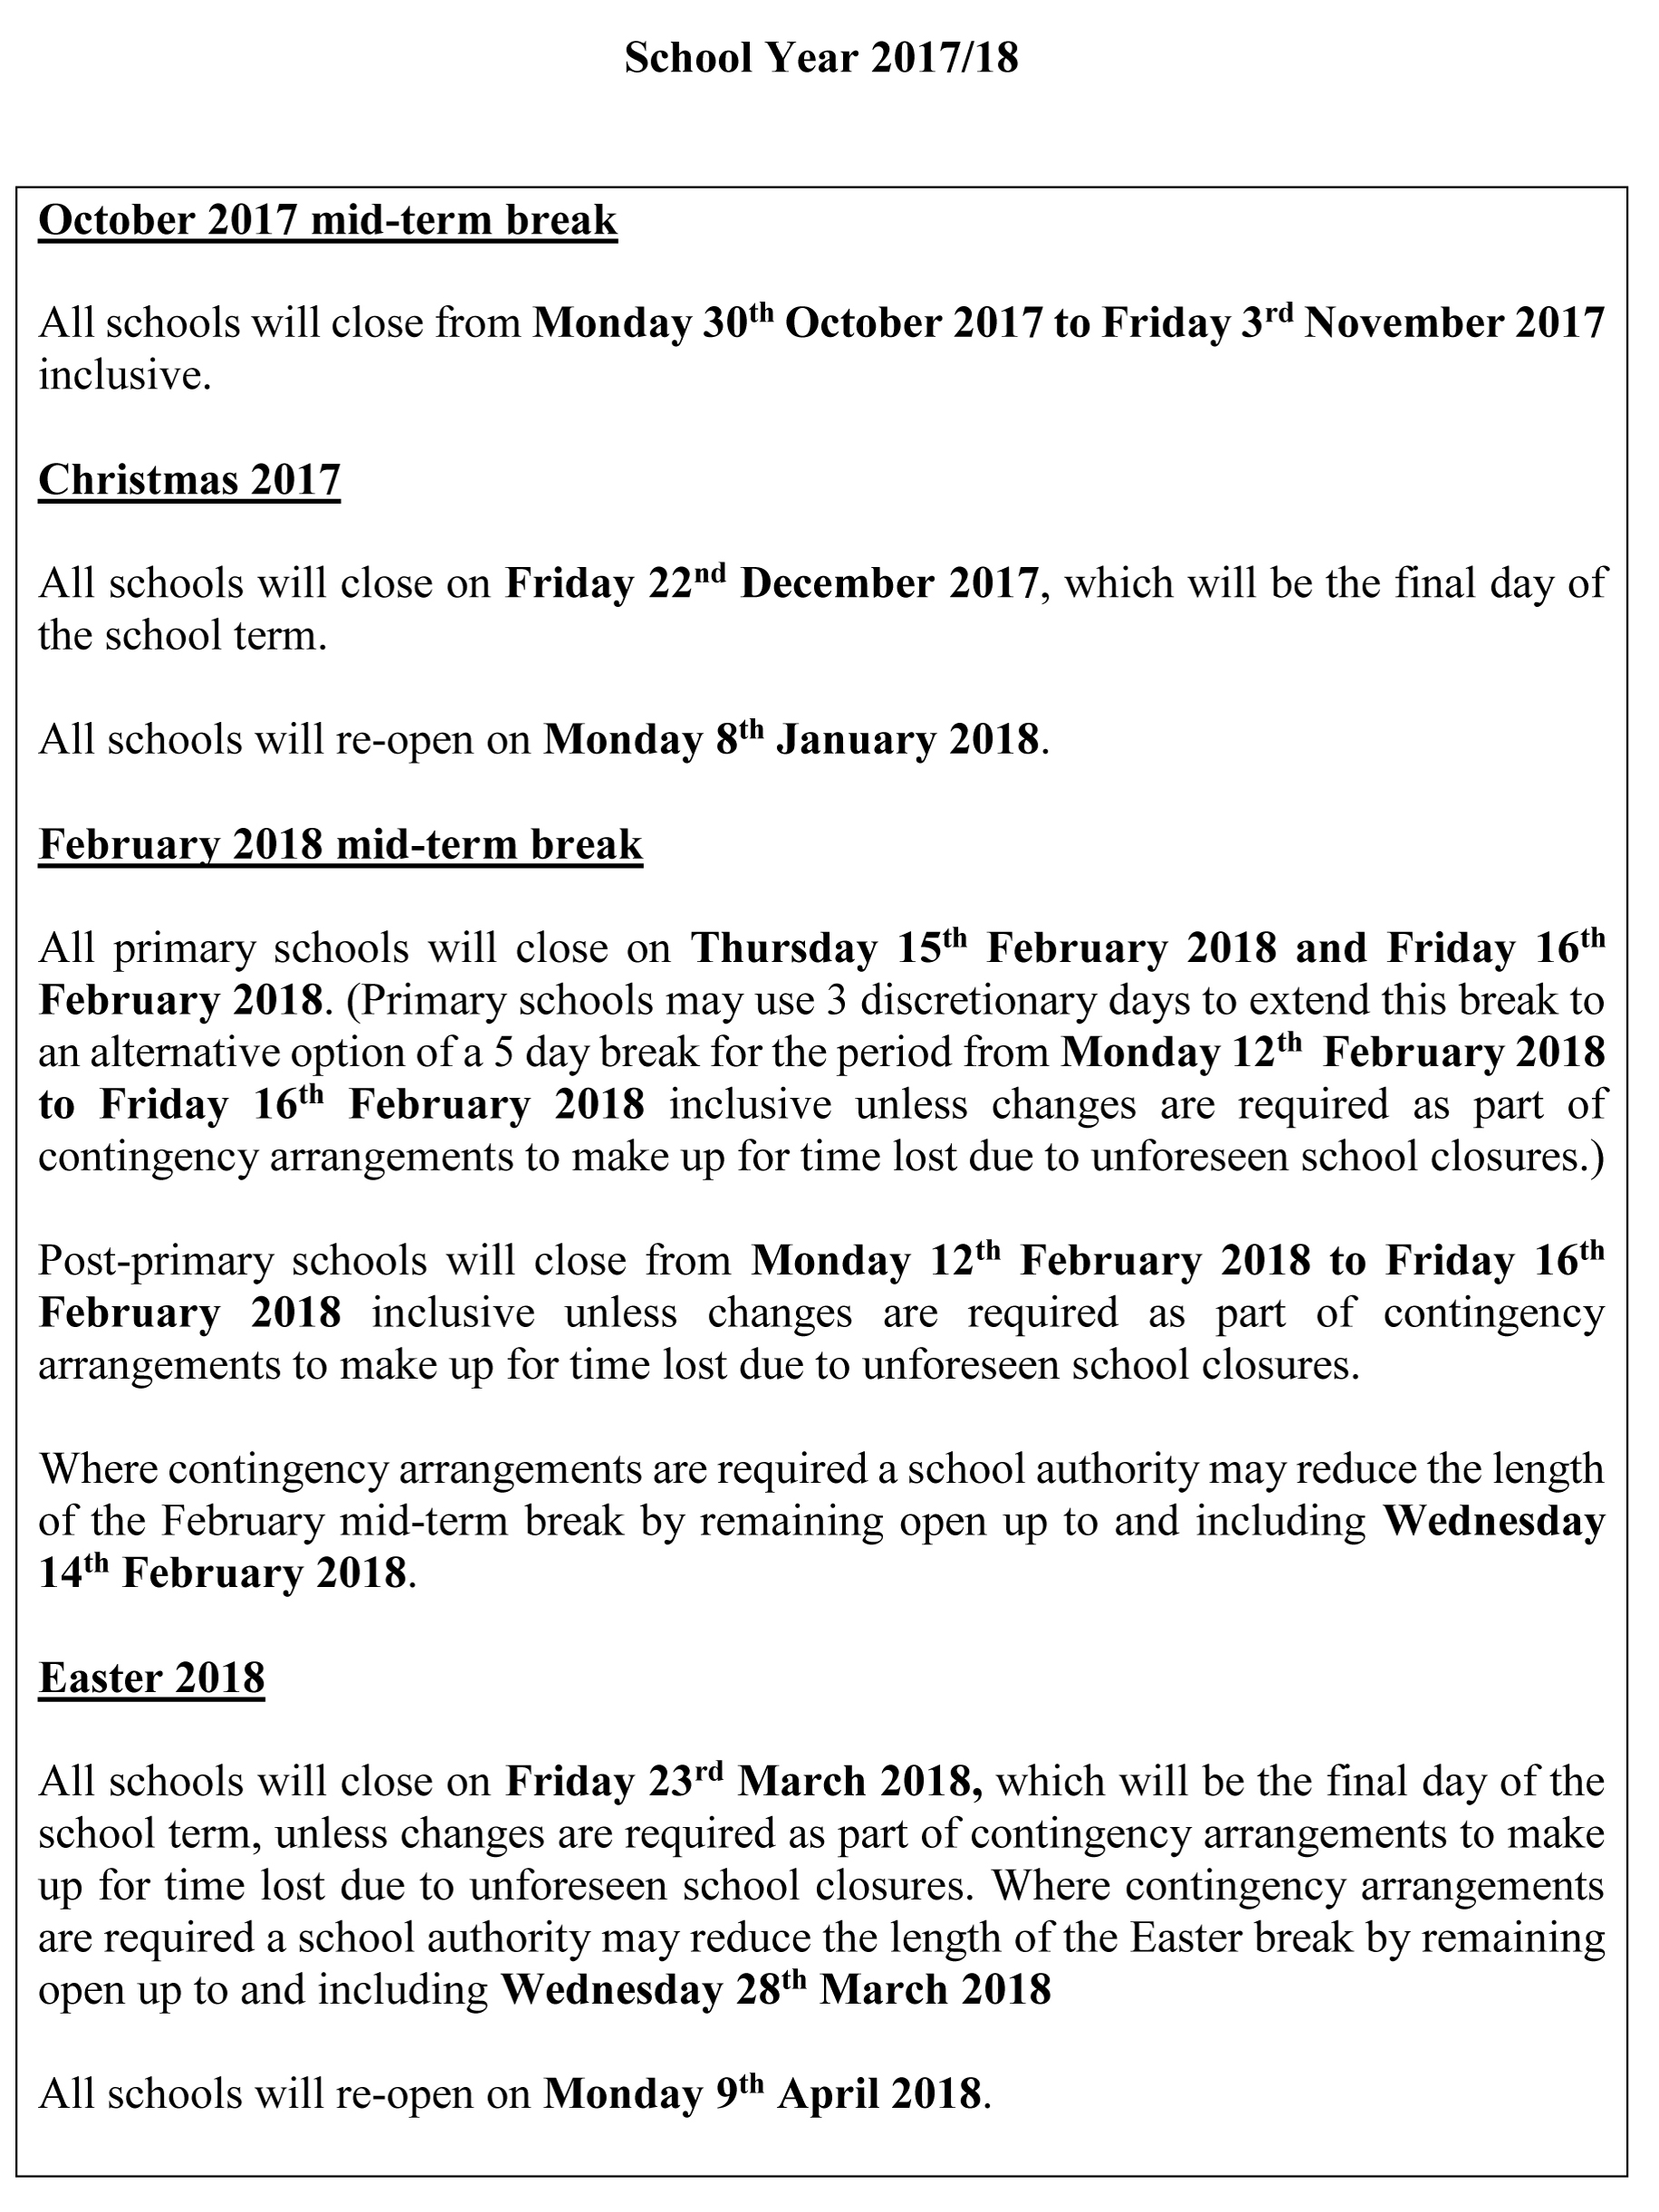 School Holiday Breaks | St Colmcille's Parents' Association